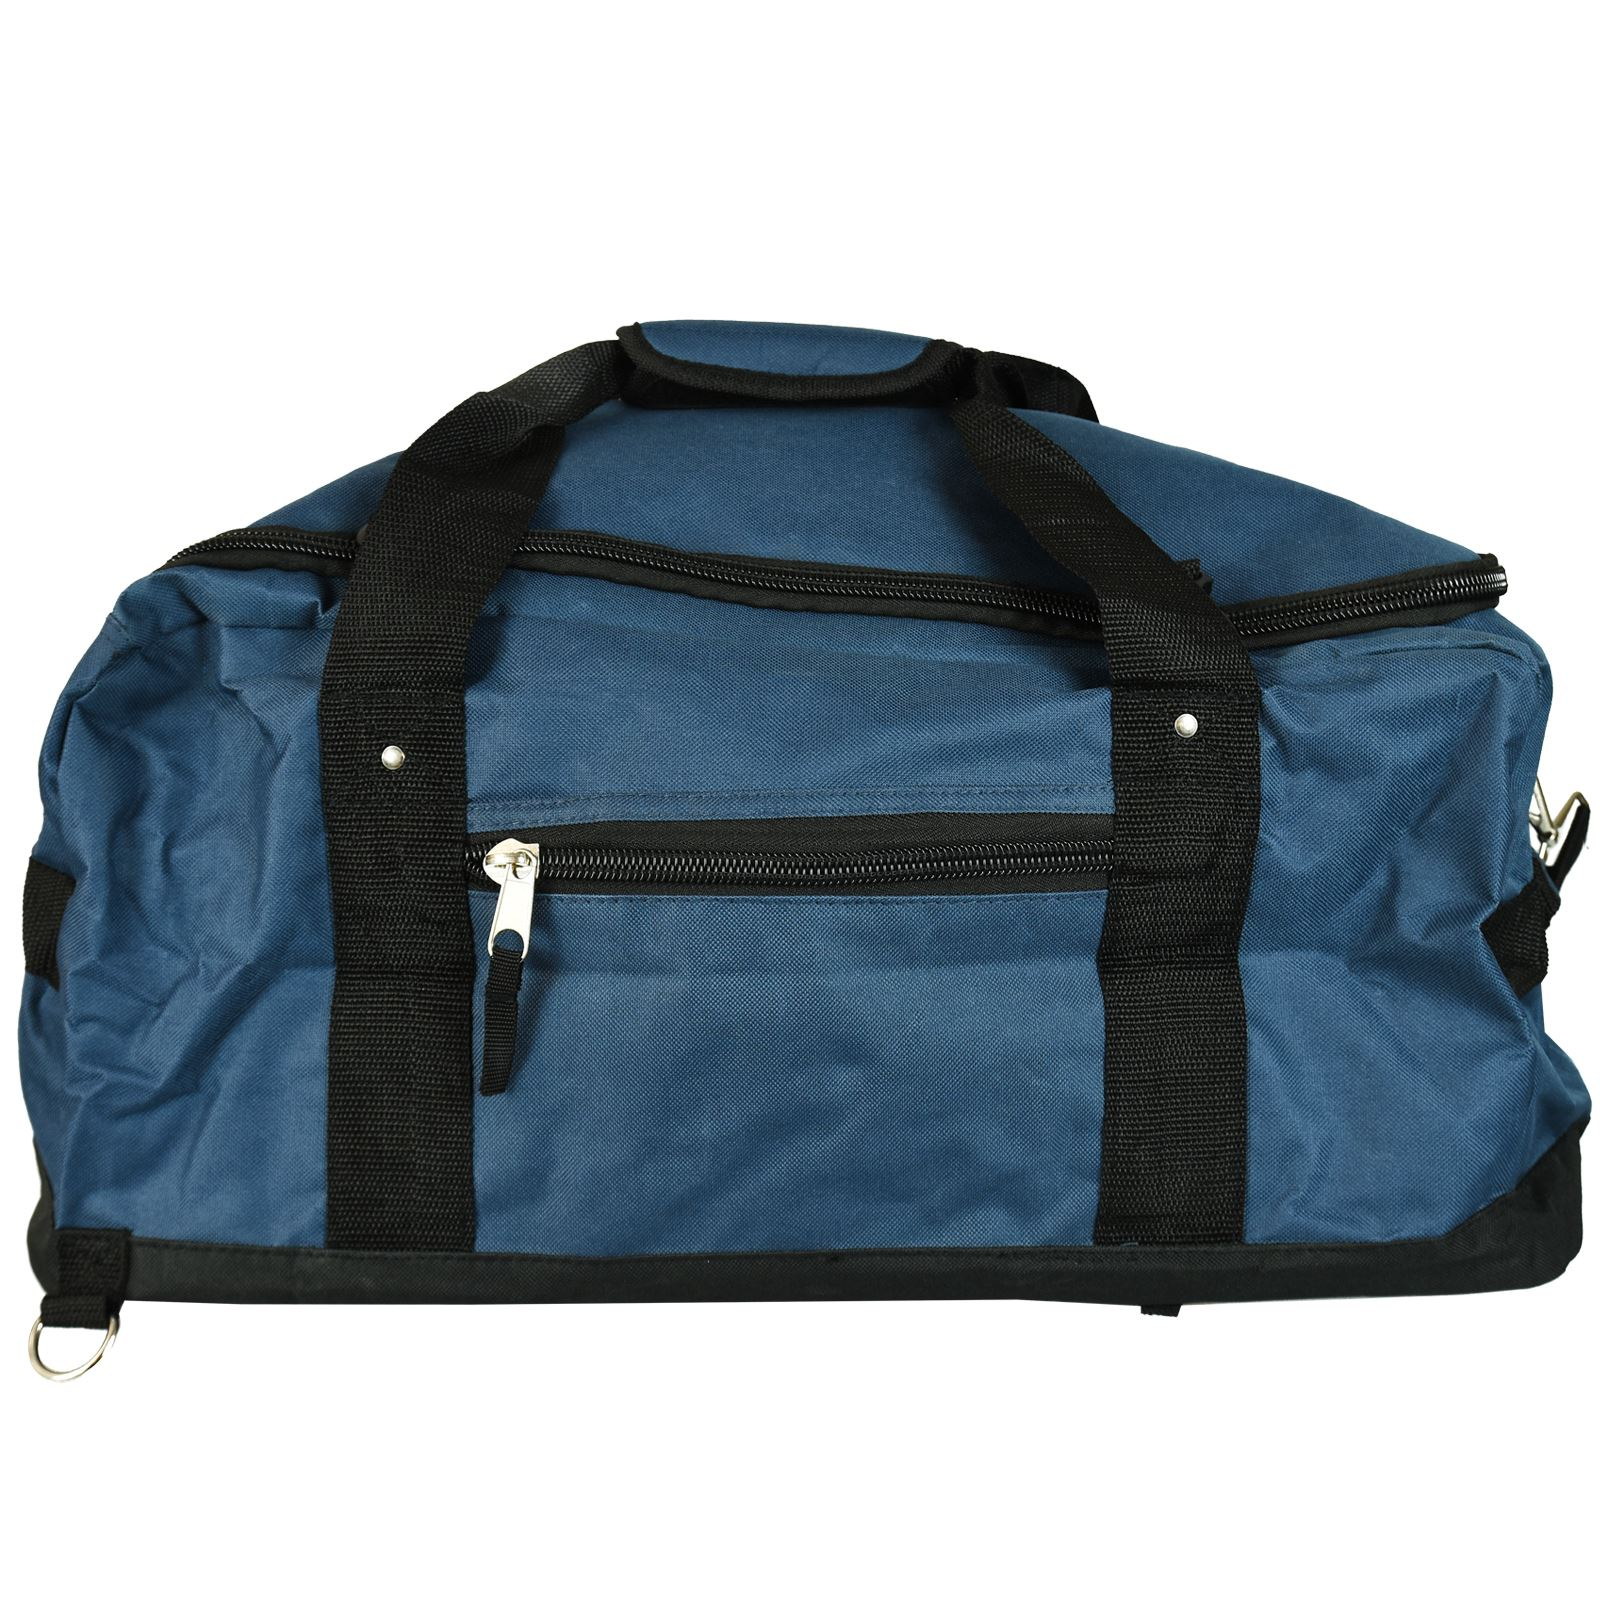 Hand Carry On Cabin Luggage Flight Bag Holdall Gym Sports Overnight Travel